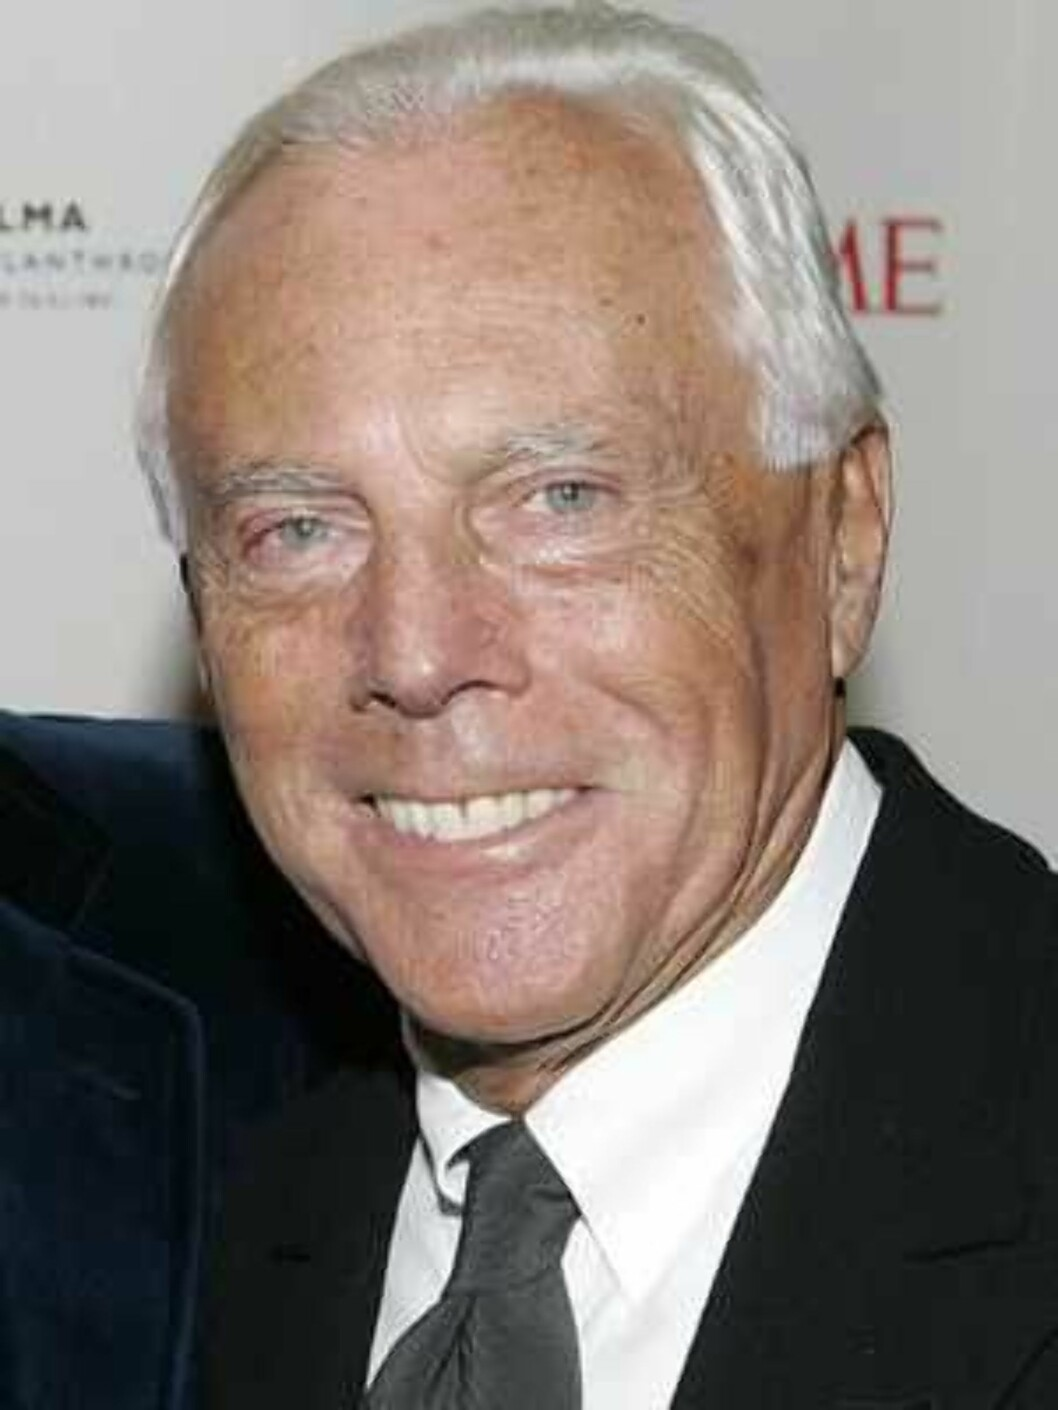 ** FILE ** Giorgio Armani is seen in this Thursday, Nov. 3, 2005 file photo, in New York. Armani wants to expand his fashion empire in China- a place he says has always inspired his designs. (AP Photo/Stephen Chernin) Foto: AP